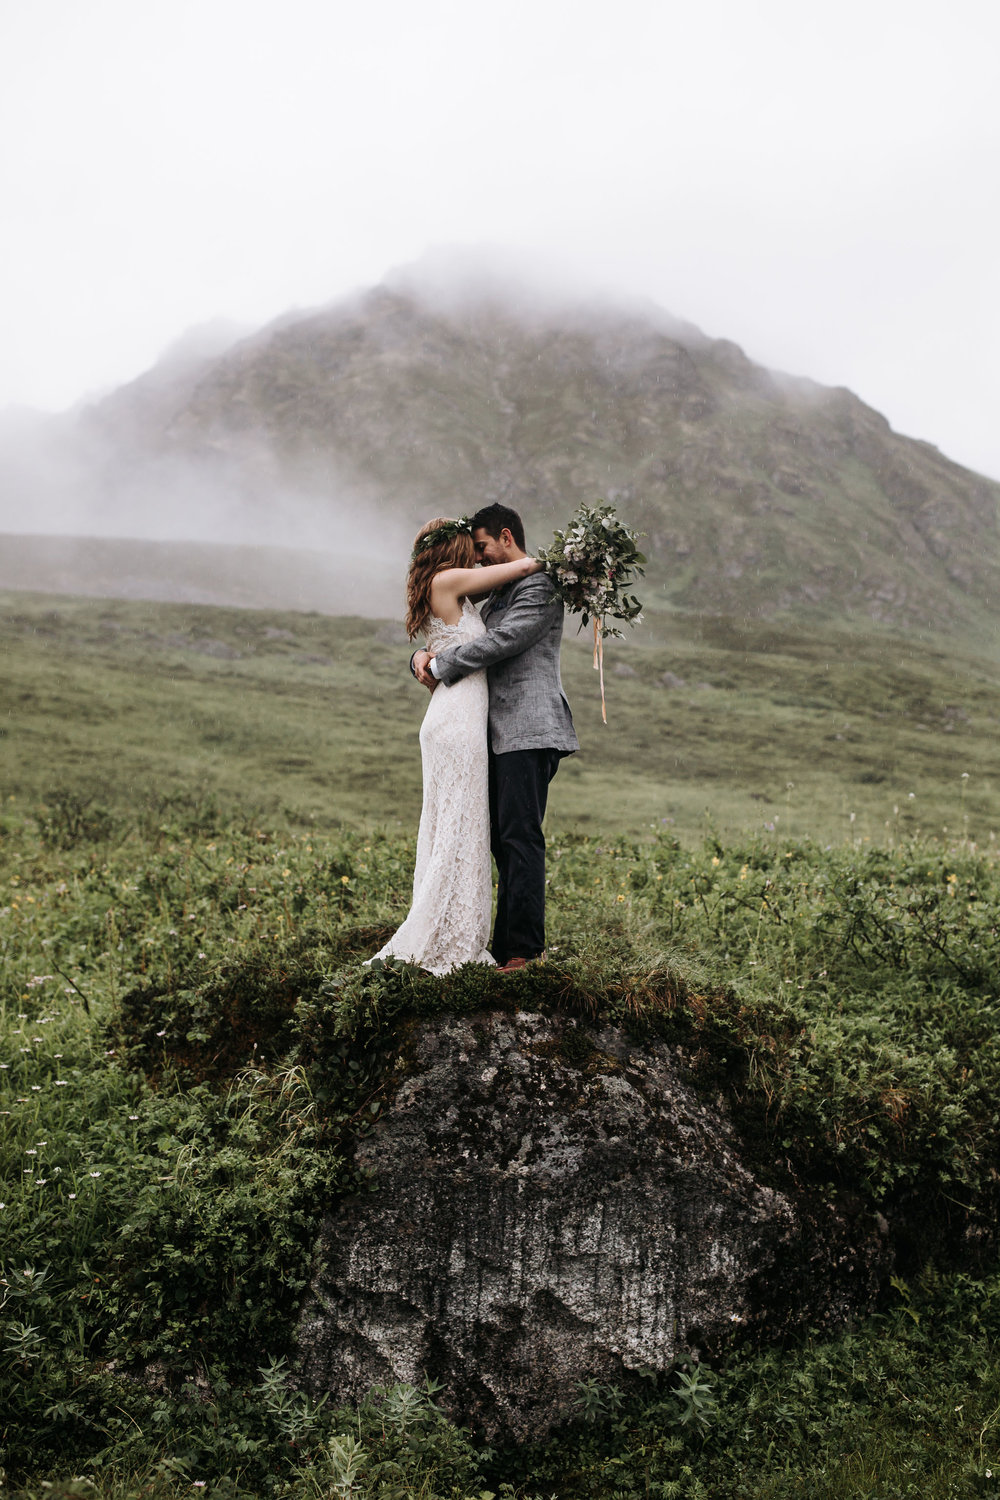 Alaska Elopement - Elope to Alaska - Alaska Destination Weddings